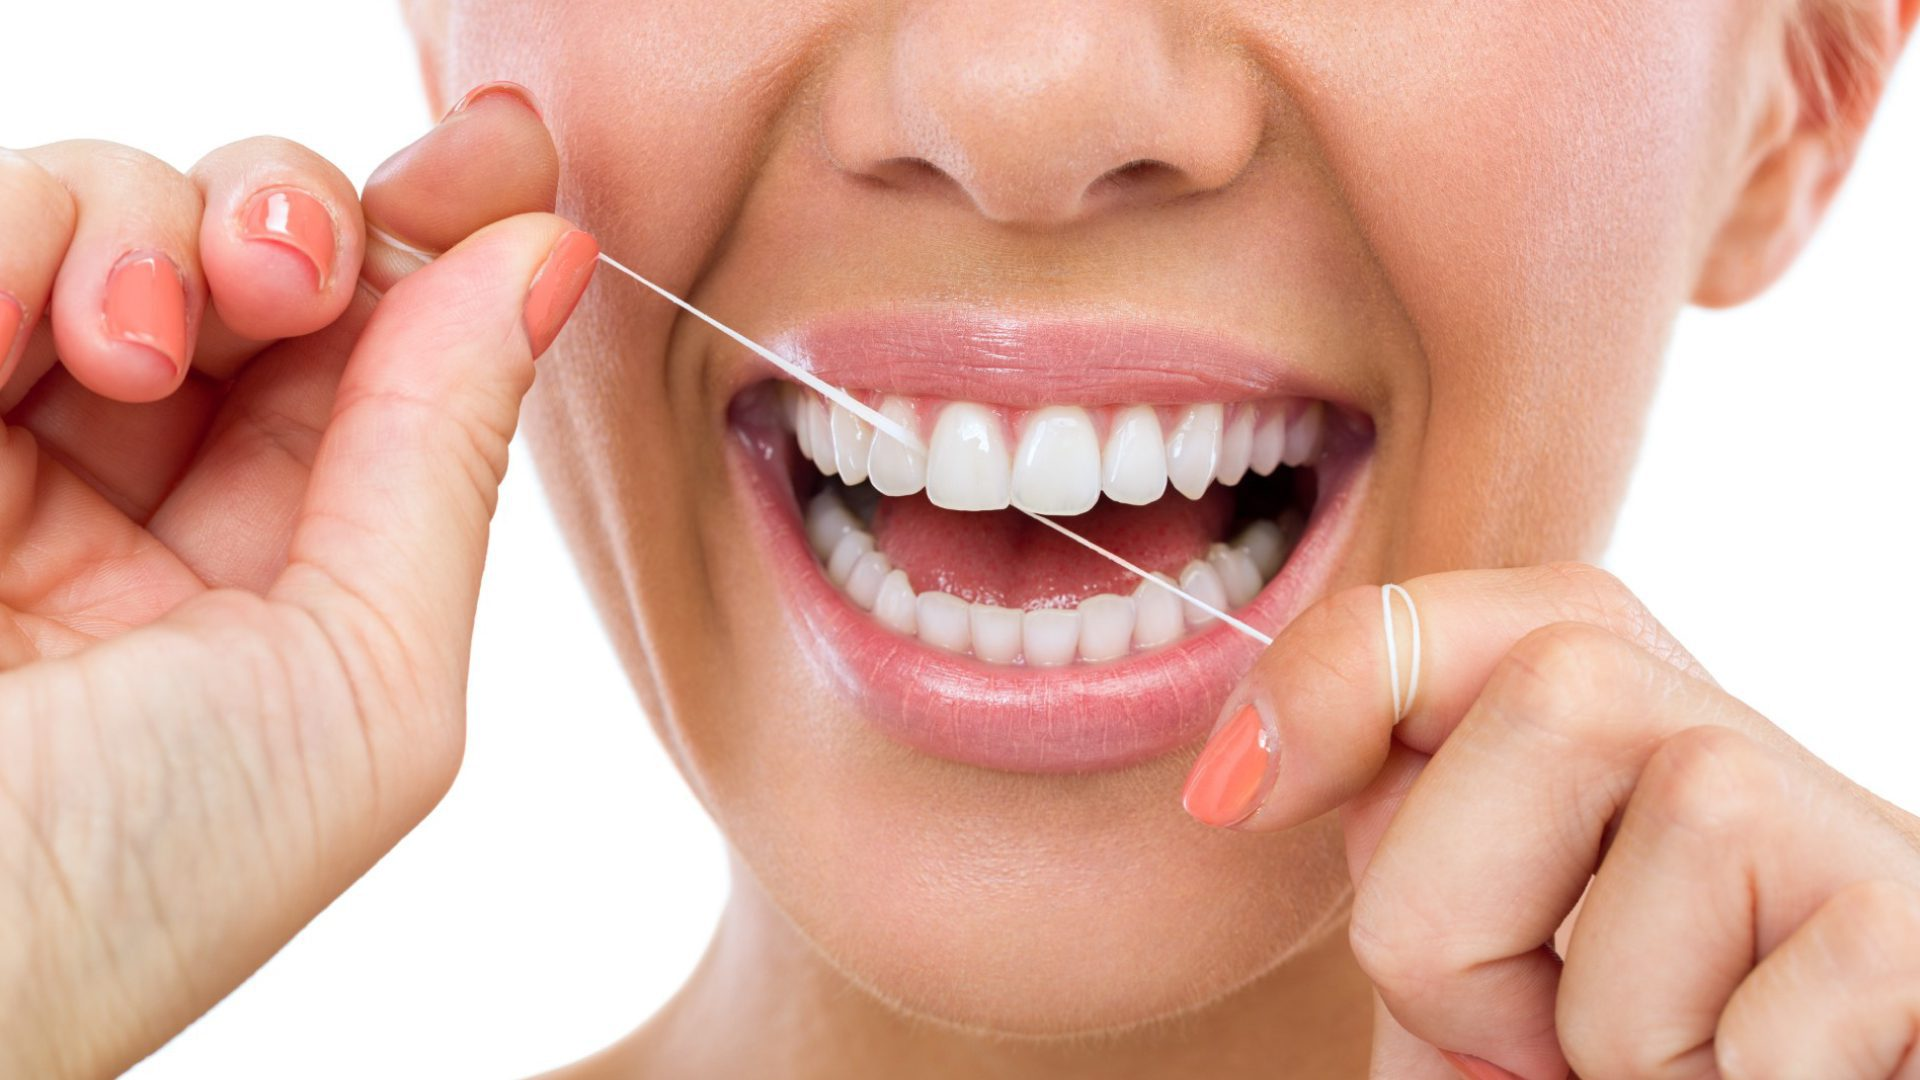 woman flossing her teeth while learning how to stop bleeding gums when flossing